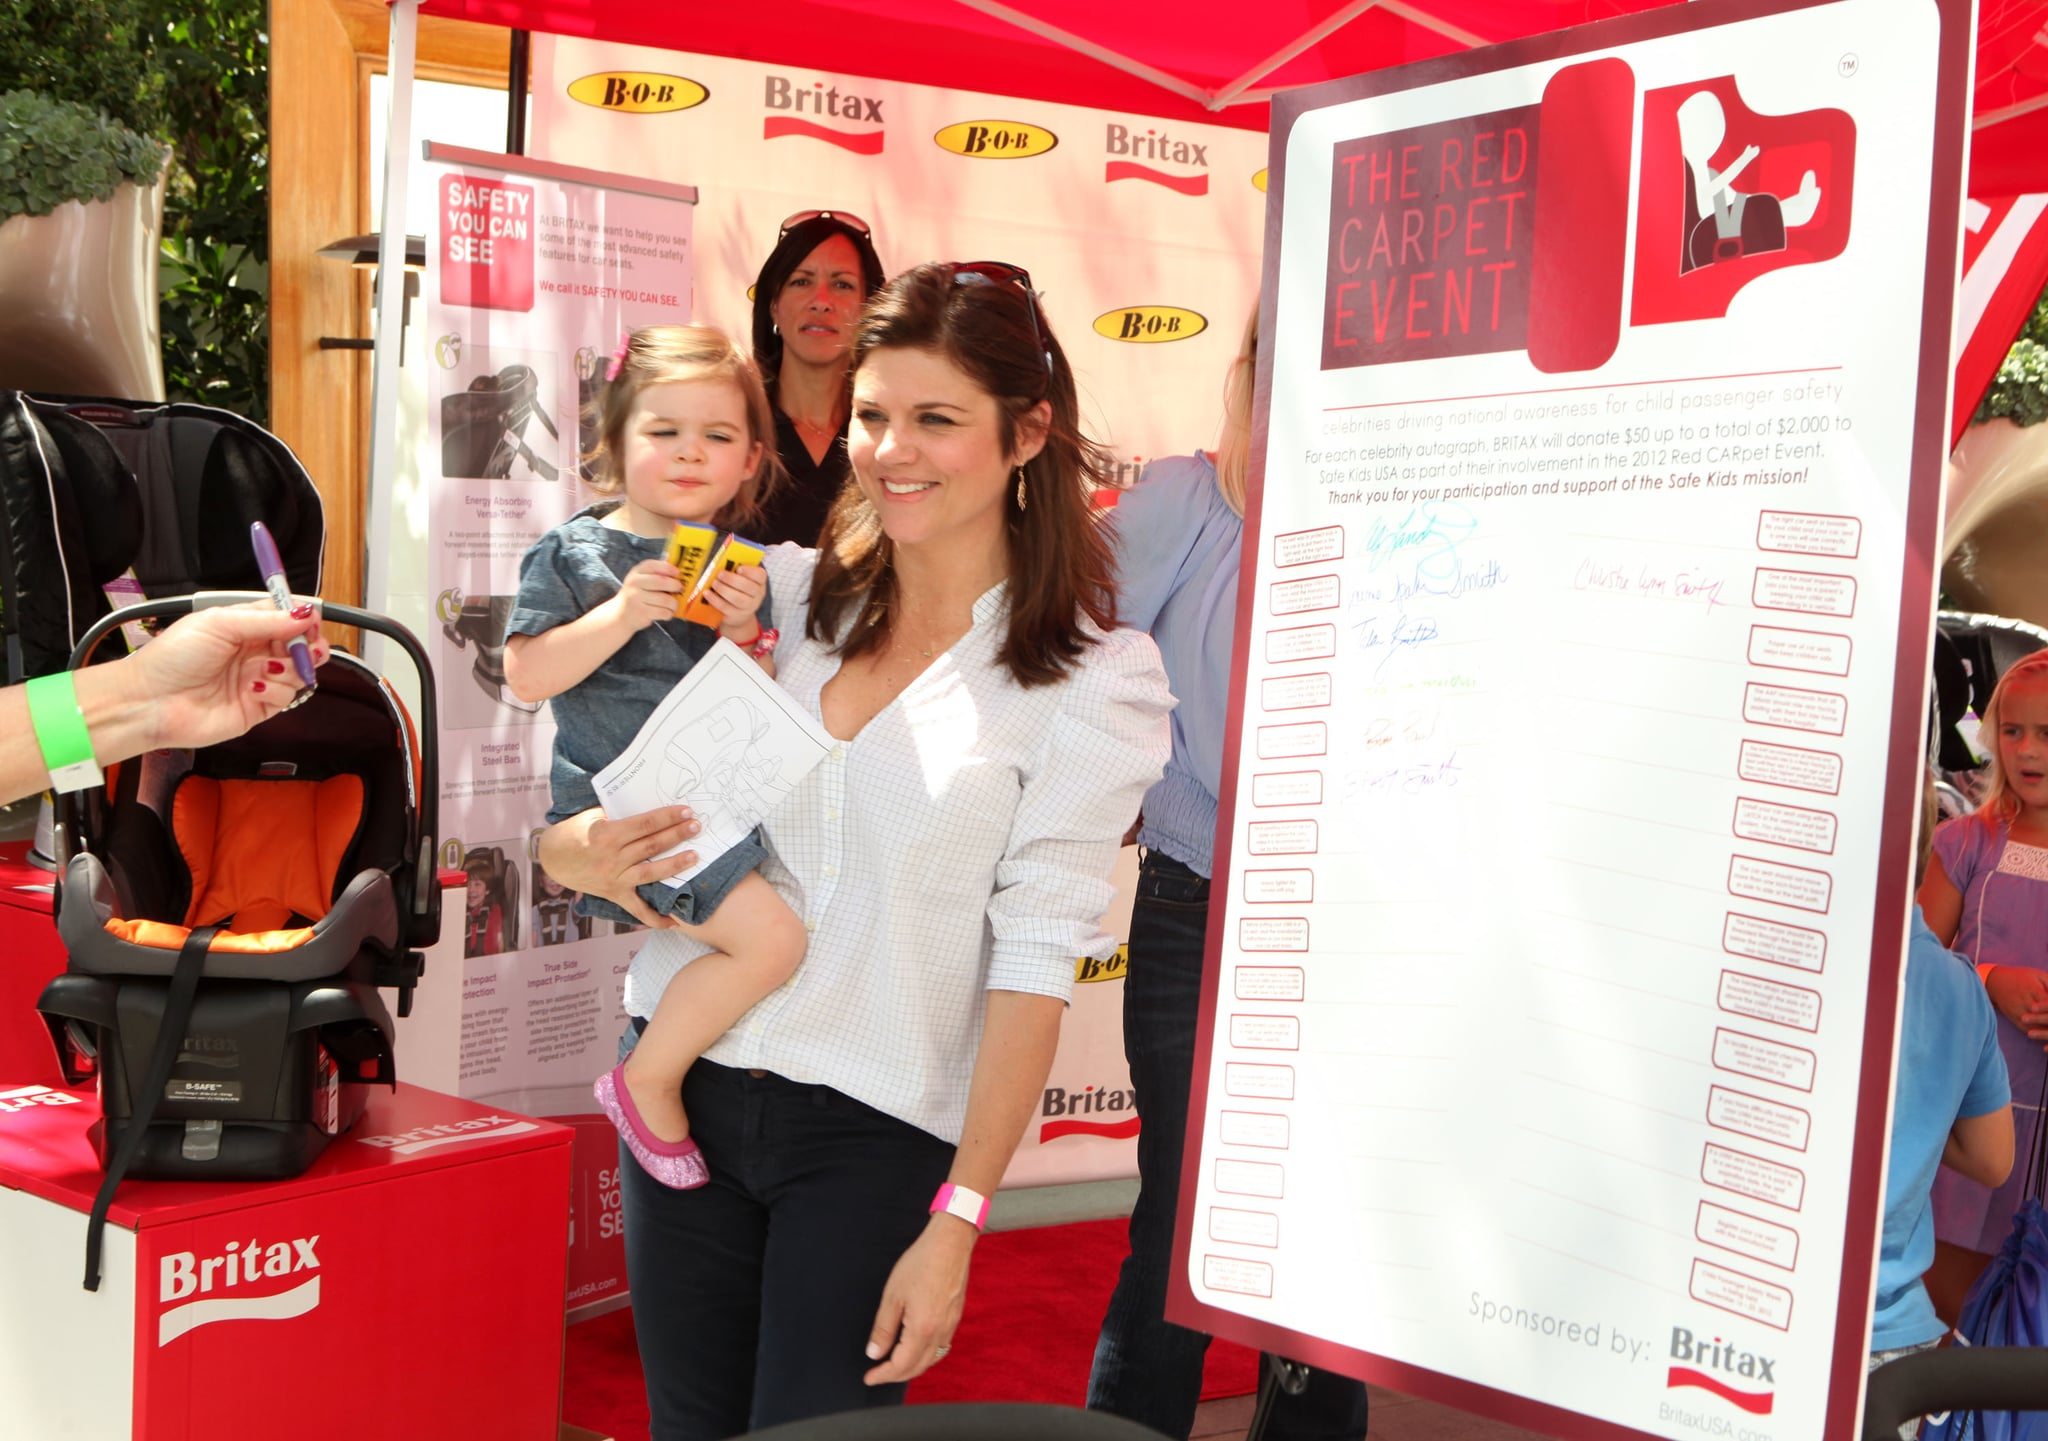 Tiffani Thiessen attended the second annual Red CARpet Event with her daughter, Harper Renn Smith, and learned about proper car seat installation.